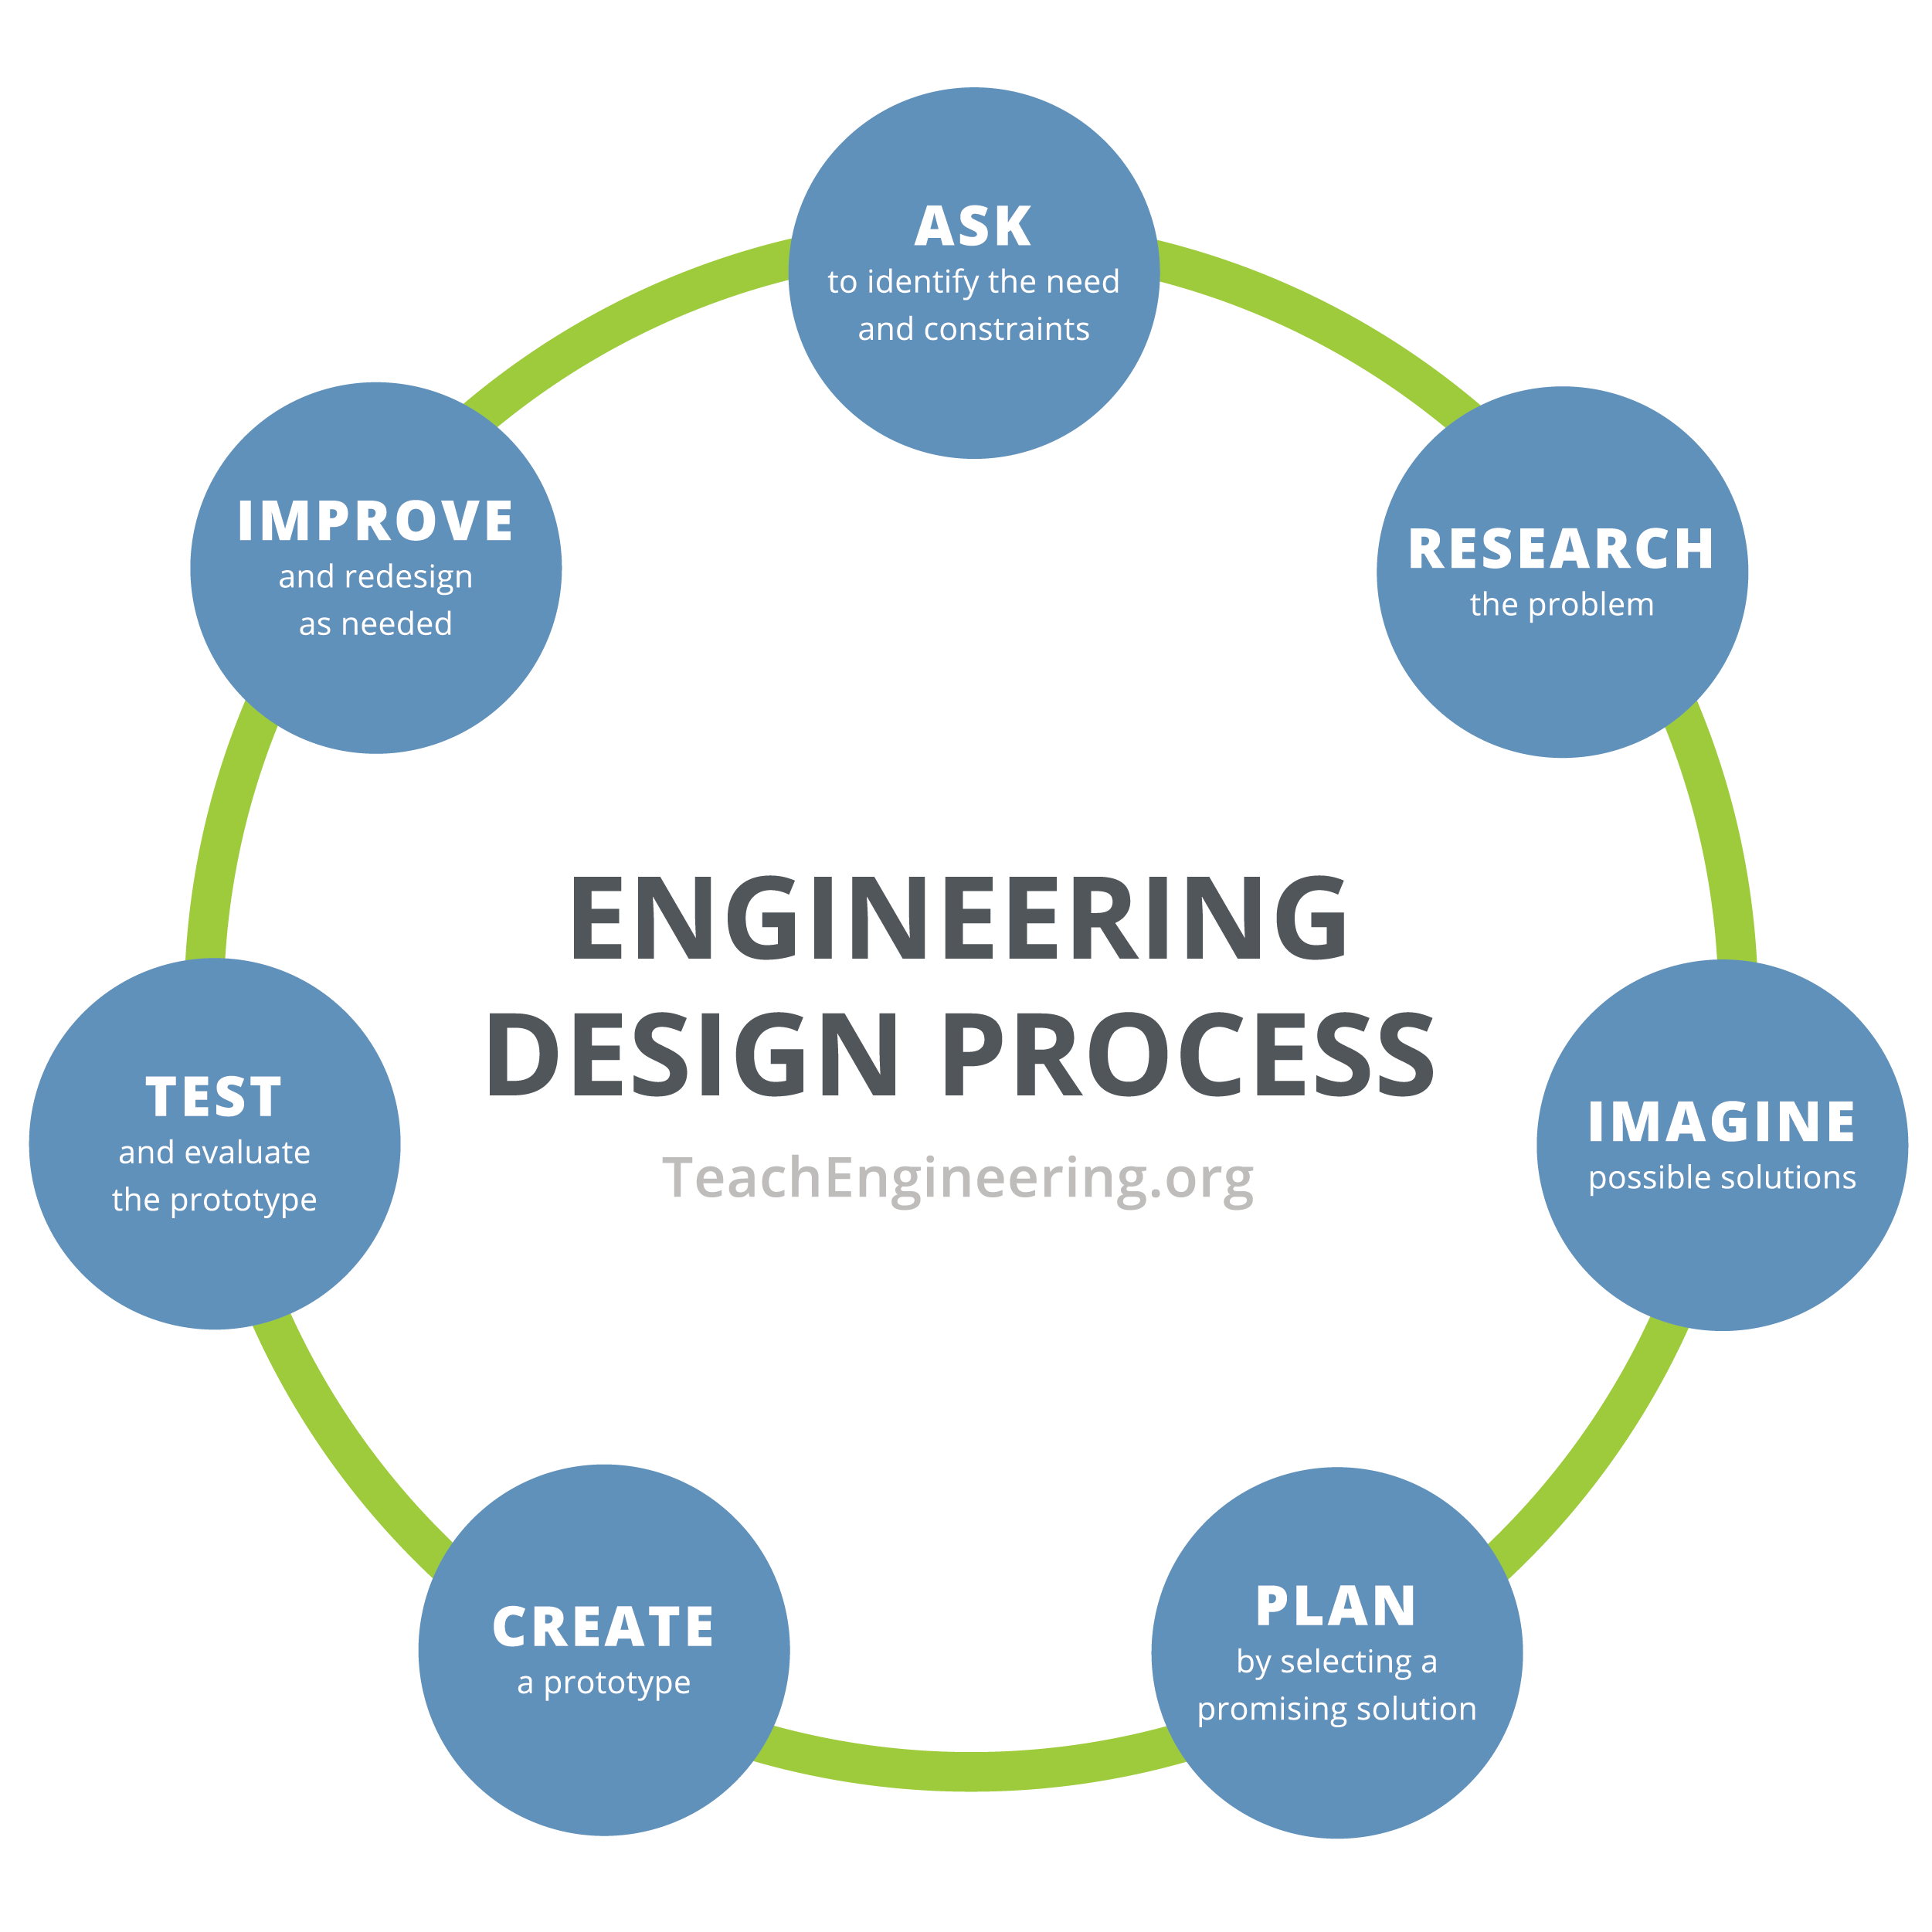 Circular diagram shows steps of the engineering design process: identify the need, research the problem, develop possible solutions, select the most promising solution, construct a prototype, test and evaluate the prototype, communicate the design, and redesign.